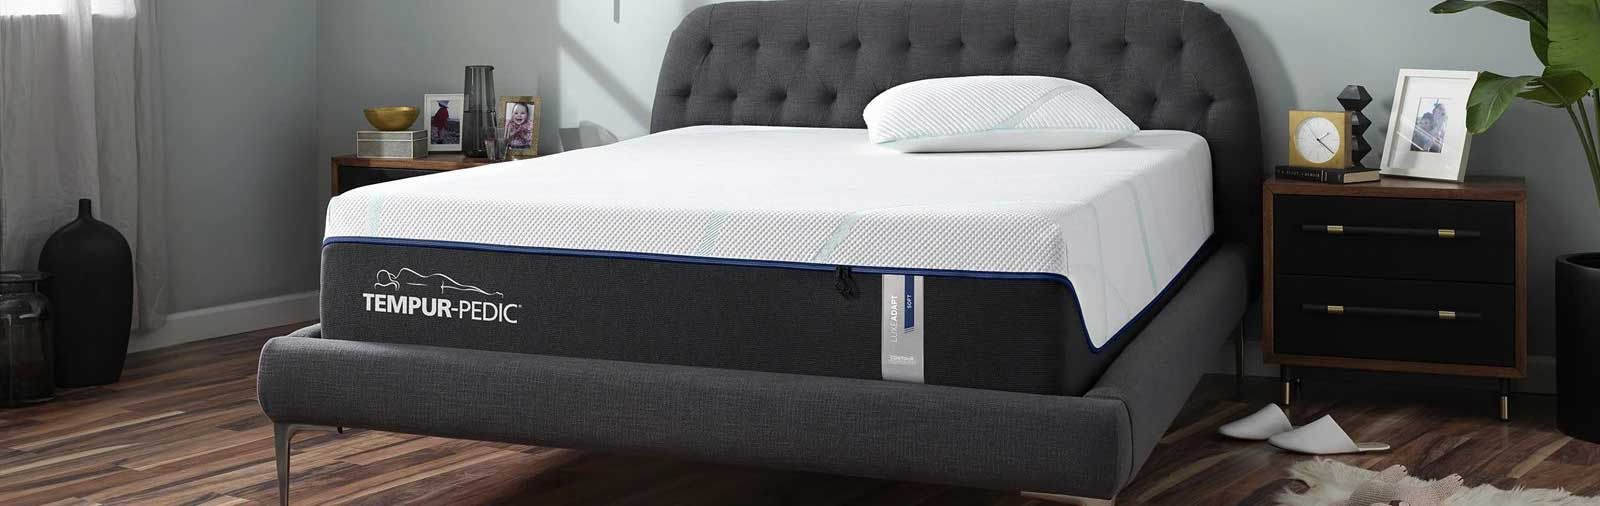 Tempur Pedic mattresses for sale in Maryland